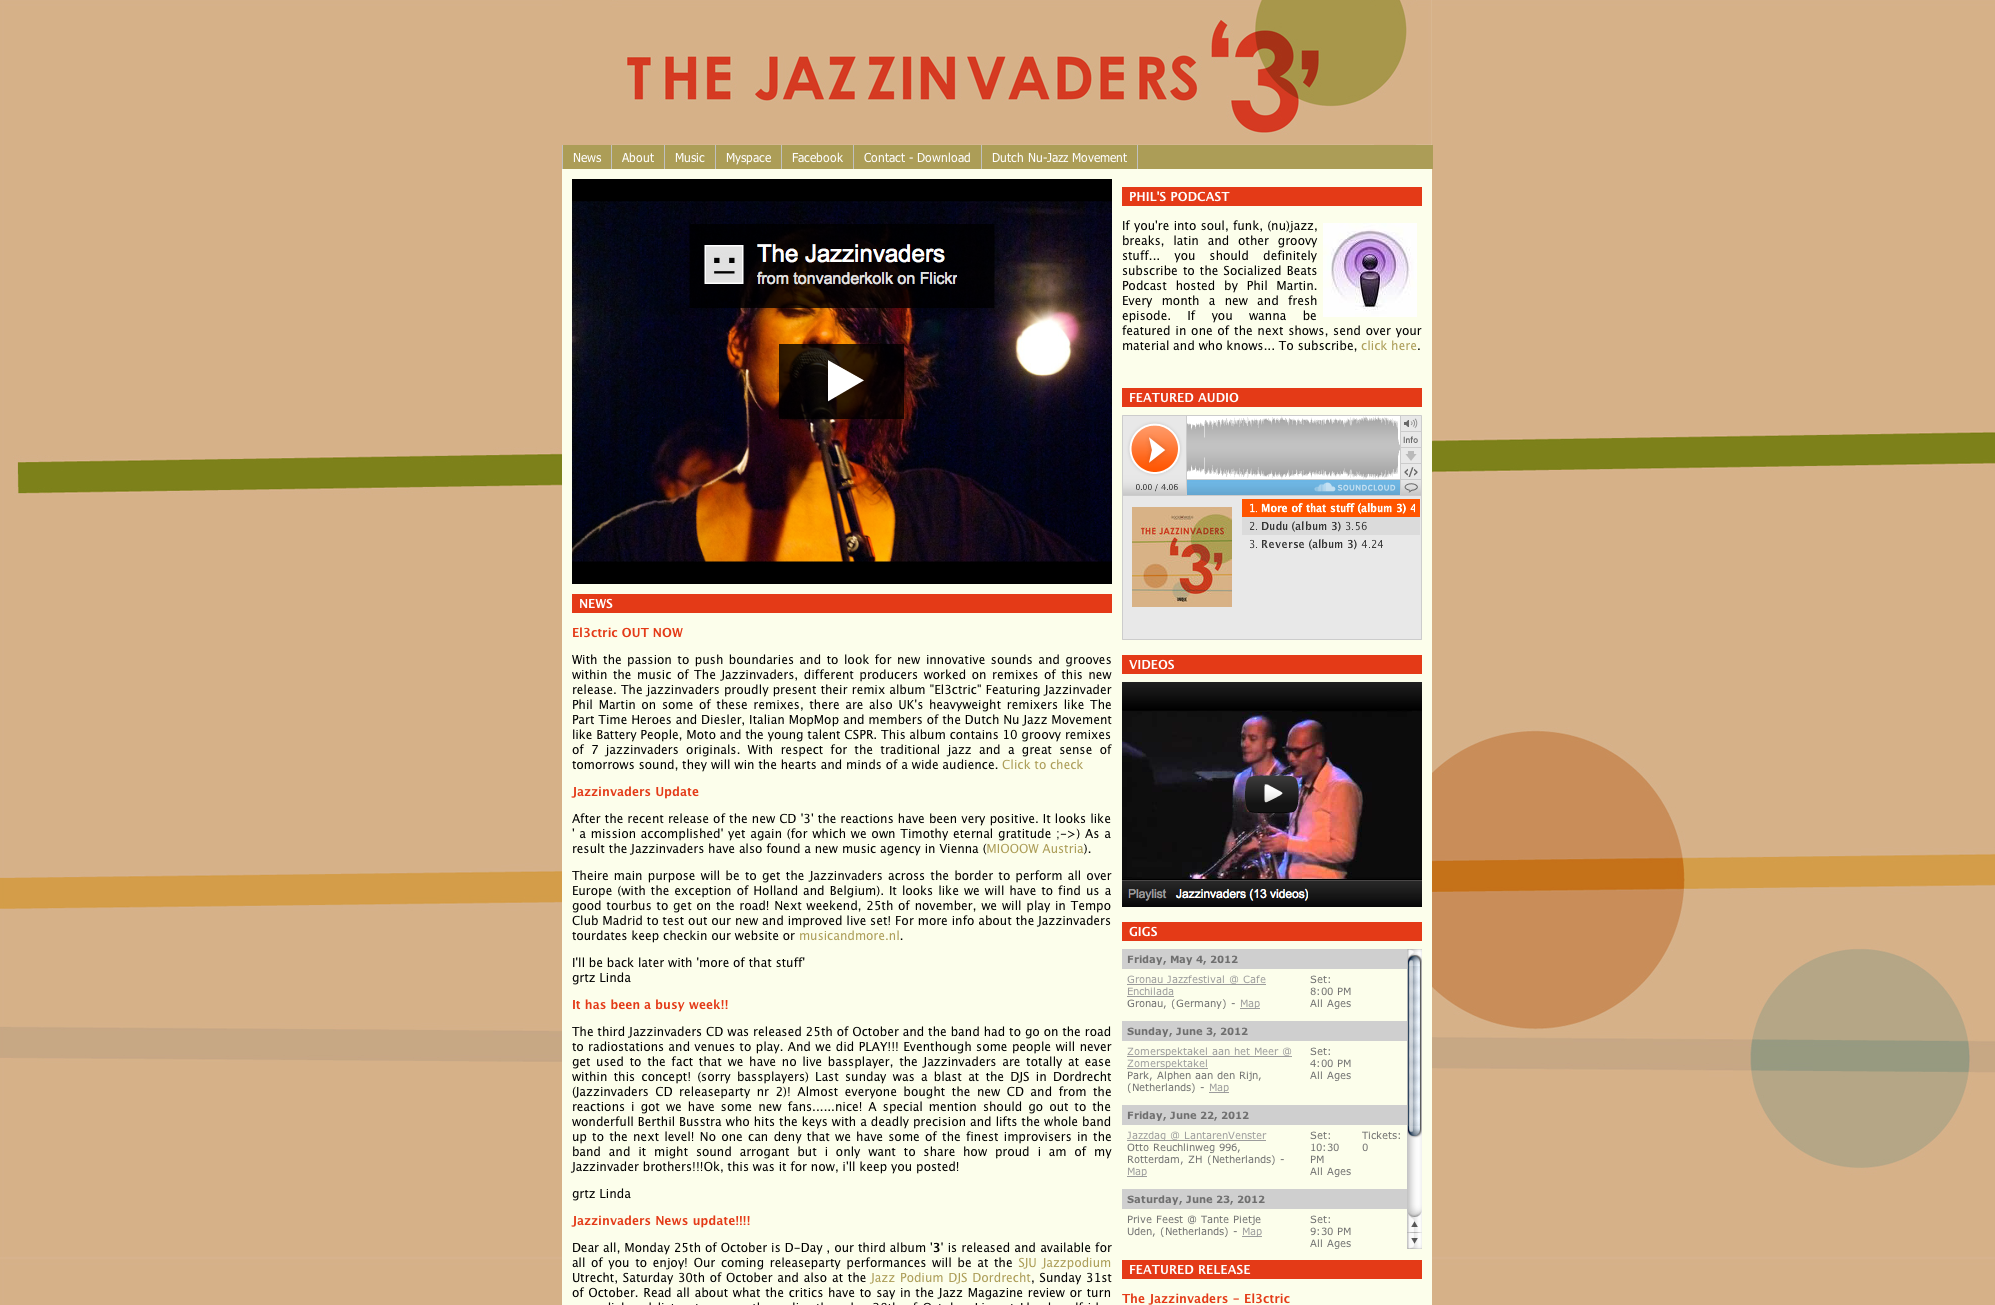 2009 - The Jazzinvaders